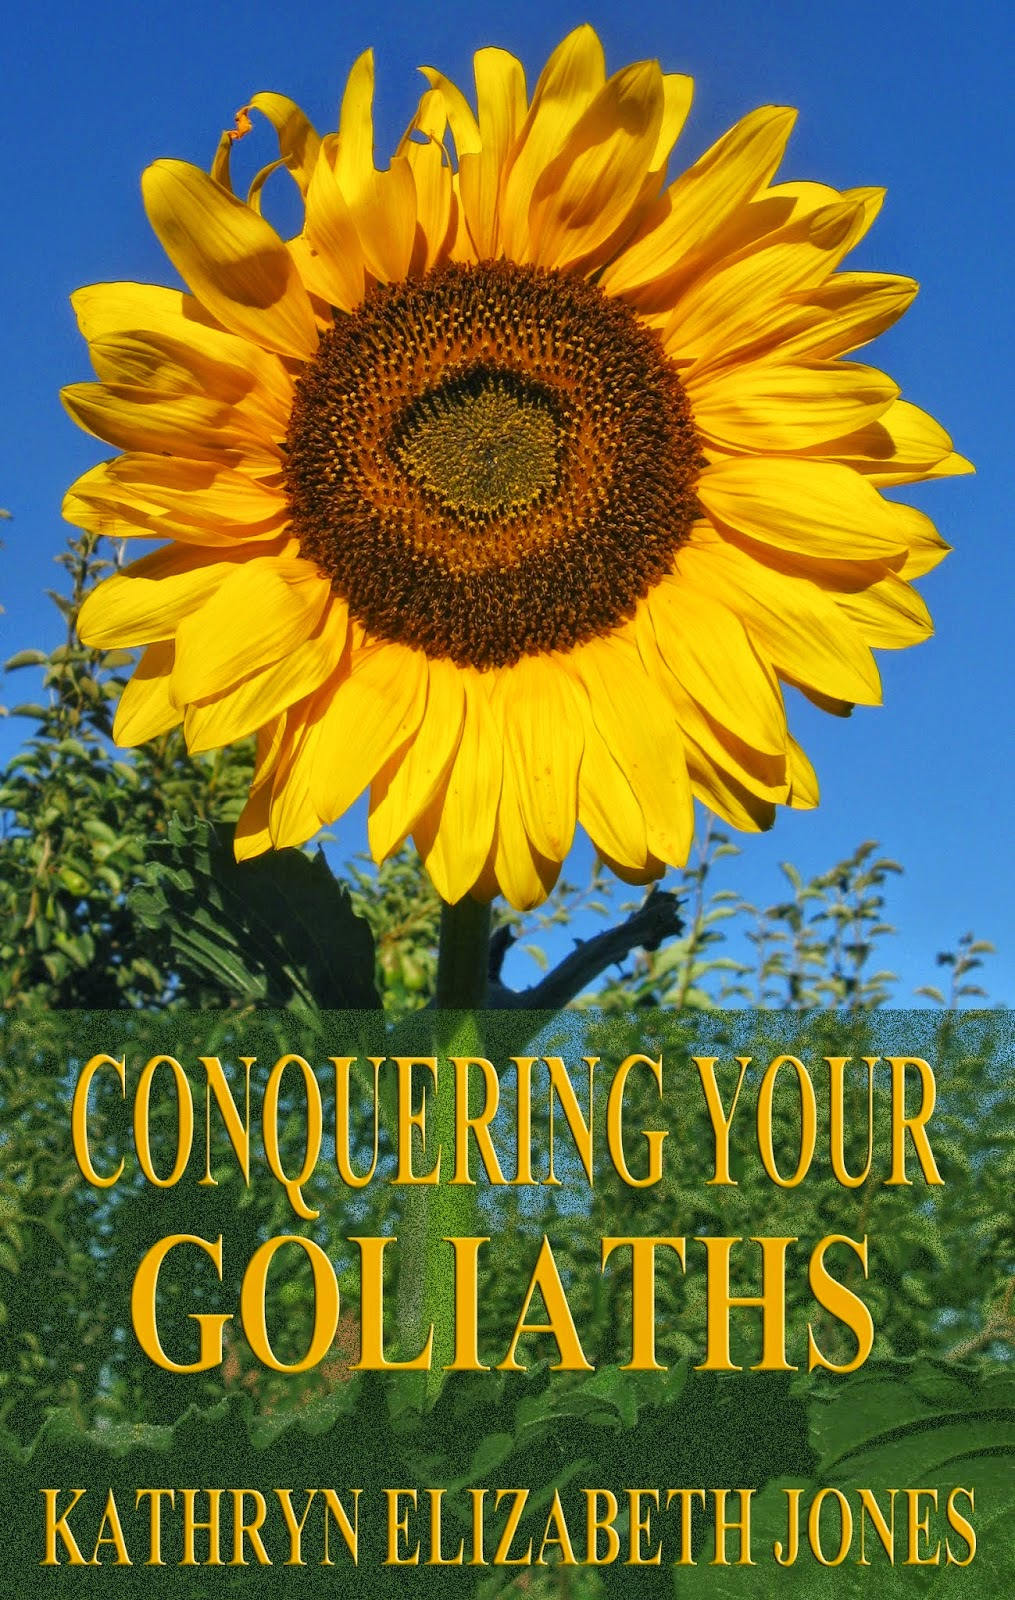 http://www.amazon.com/Conquering-Your-Goliaths-Parable-Stones-ebook/dp/B0071BFG1O/ref=tmm_kin_swatch_0?_encoding=UTF8&sr=1-3&qid=1423761110